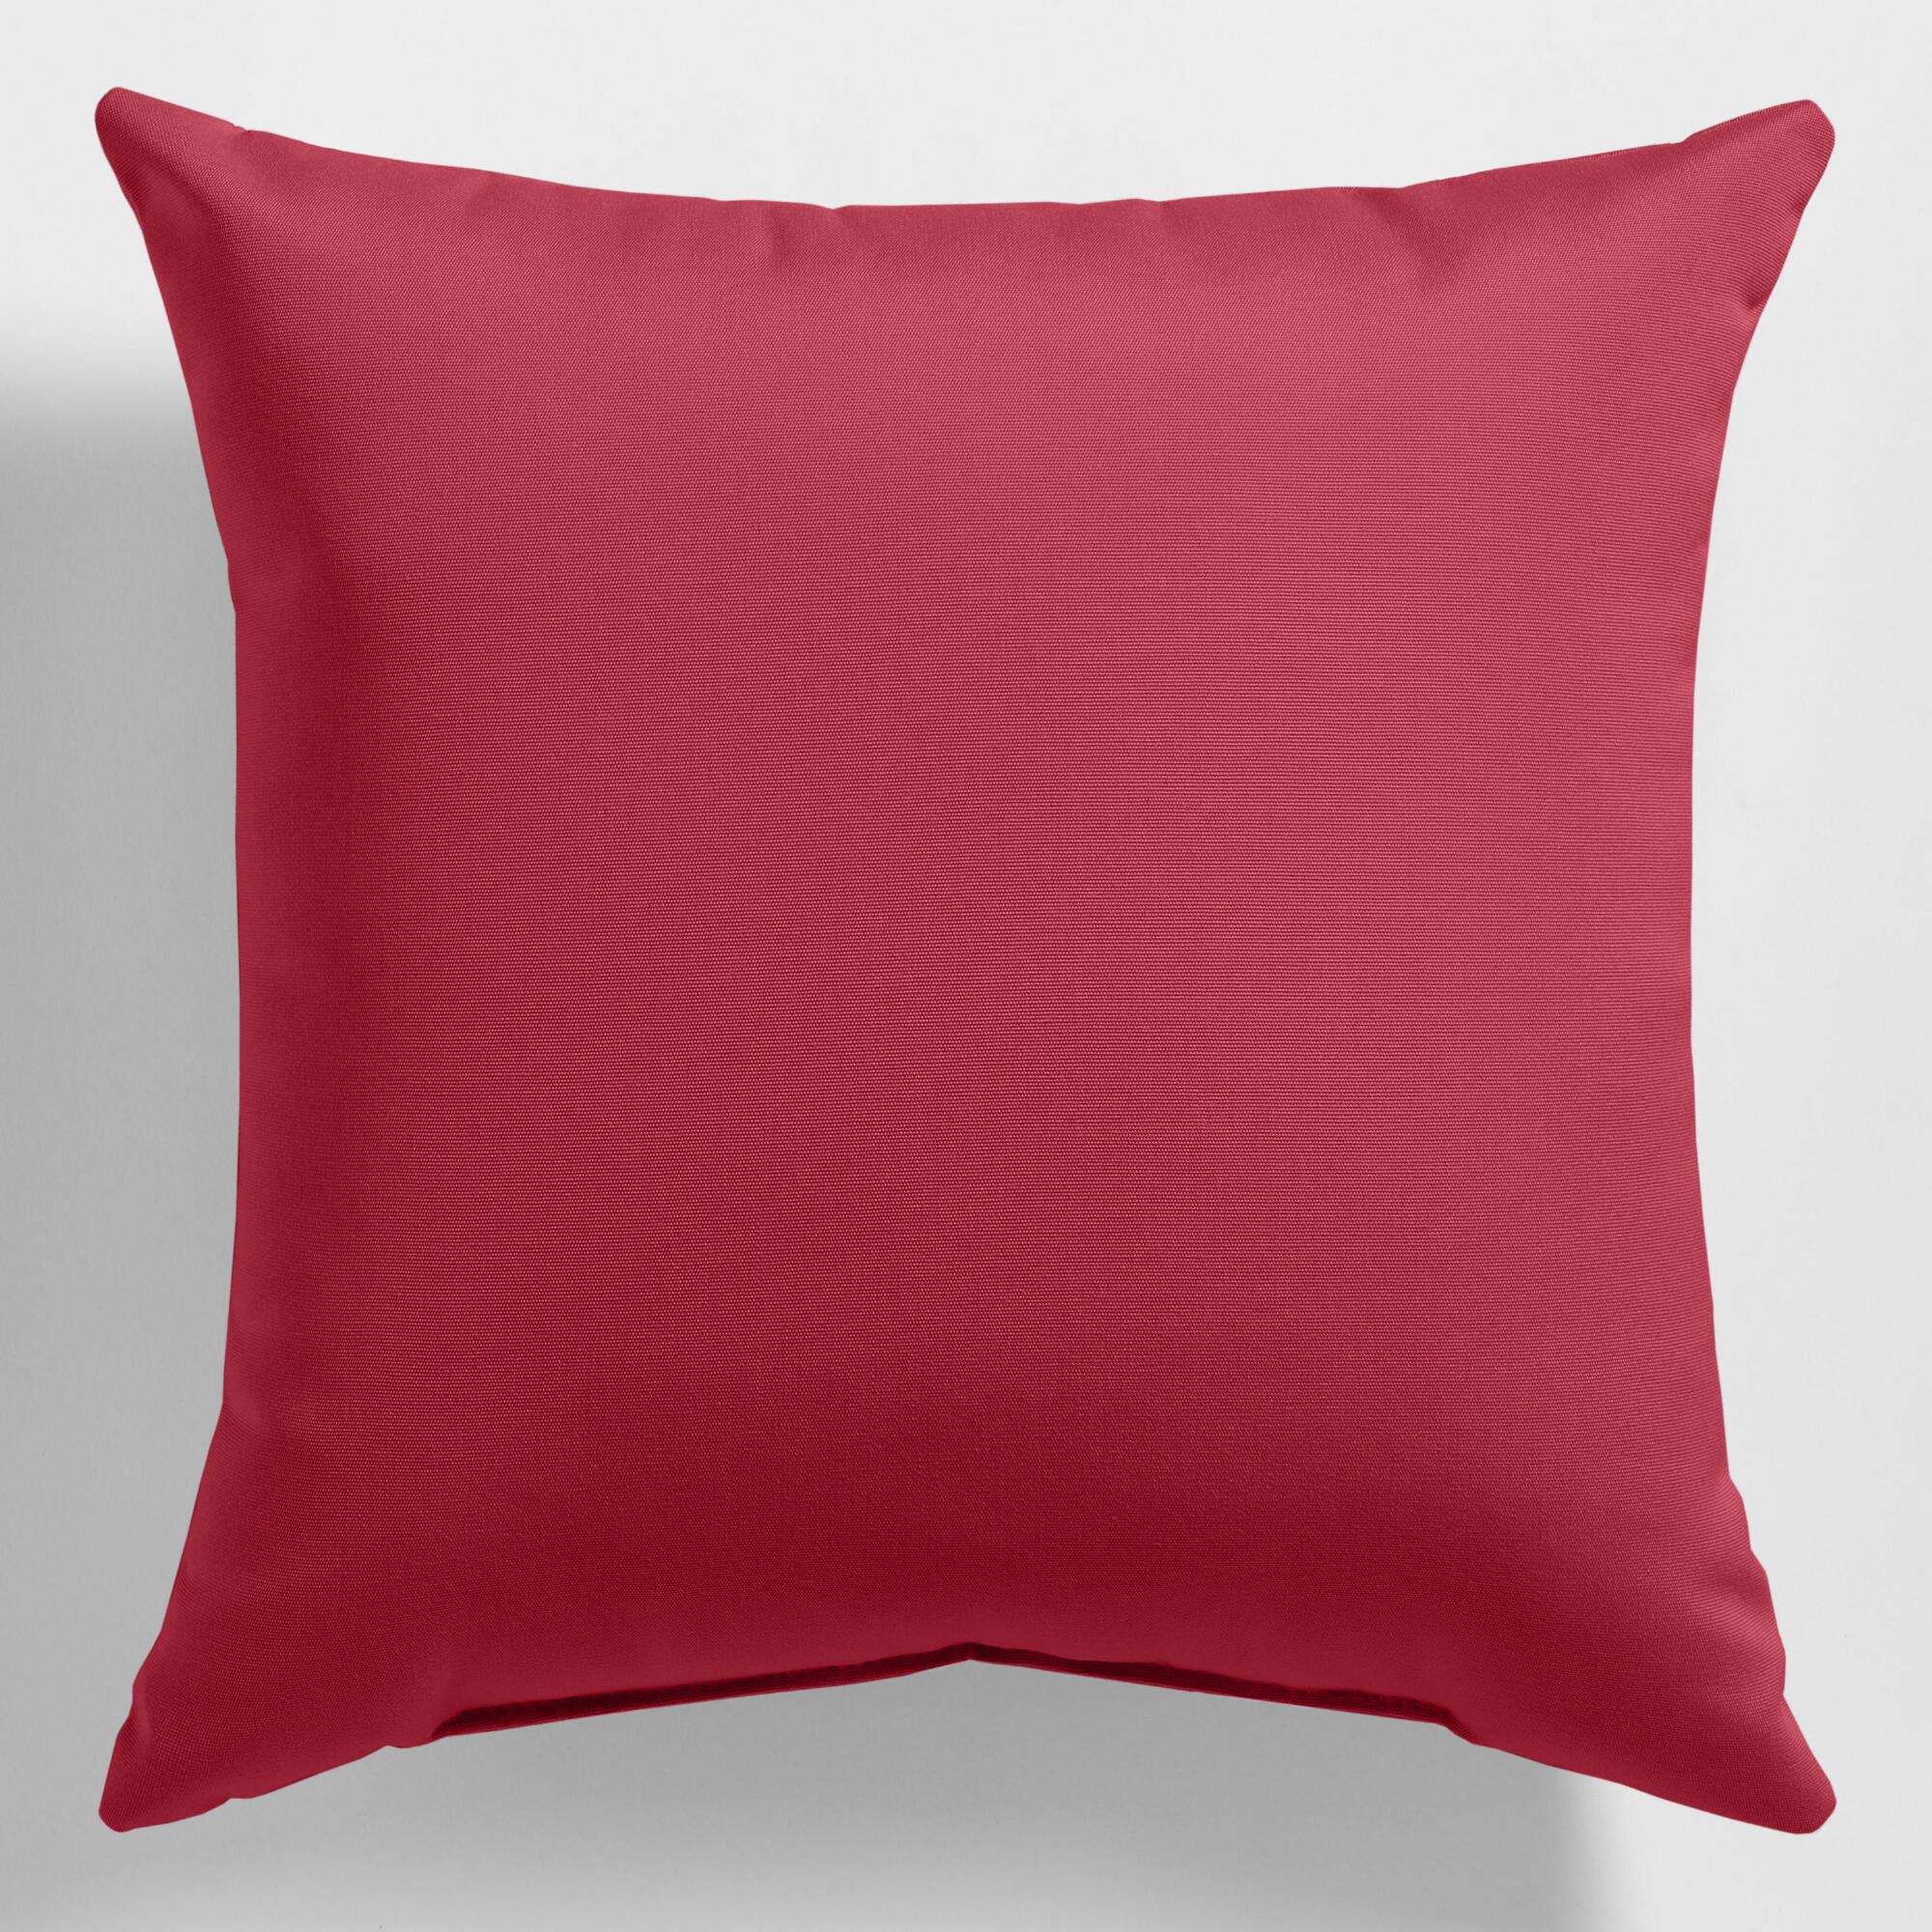 Blush Pink Decorative Pillow : Sunbrella Blush Pink Canvas Outdoor Throw Pillow World Market